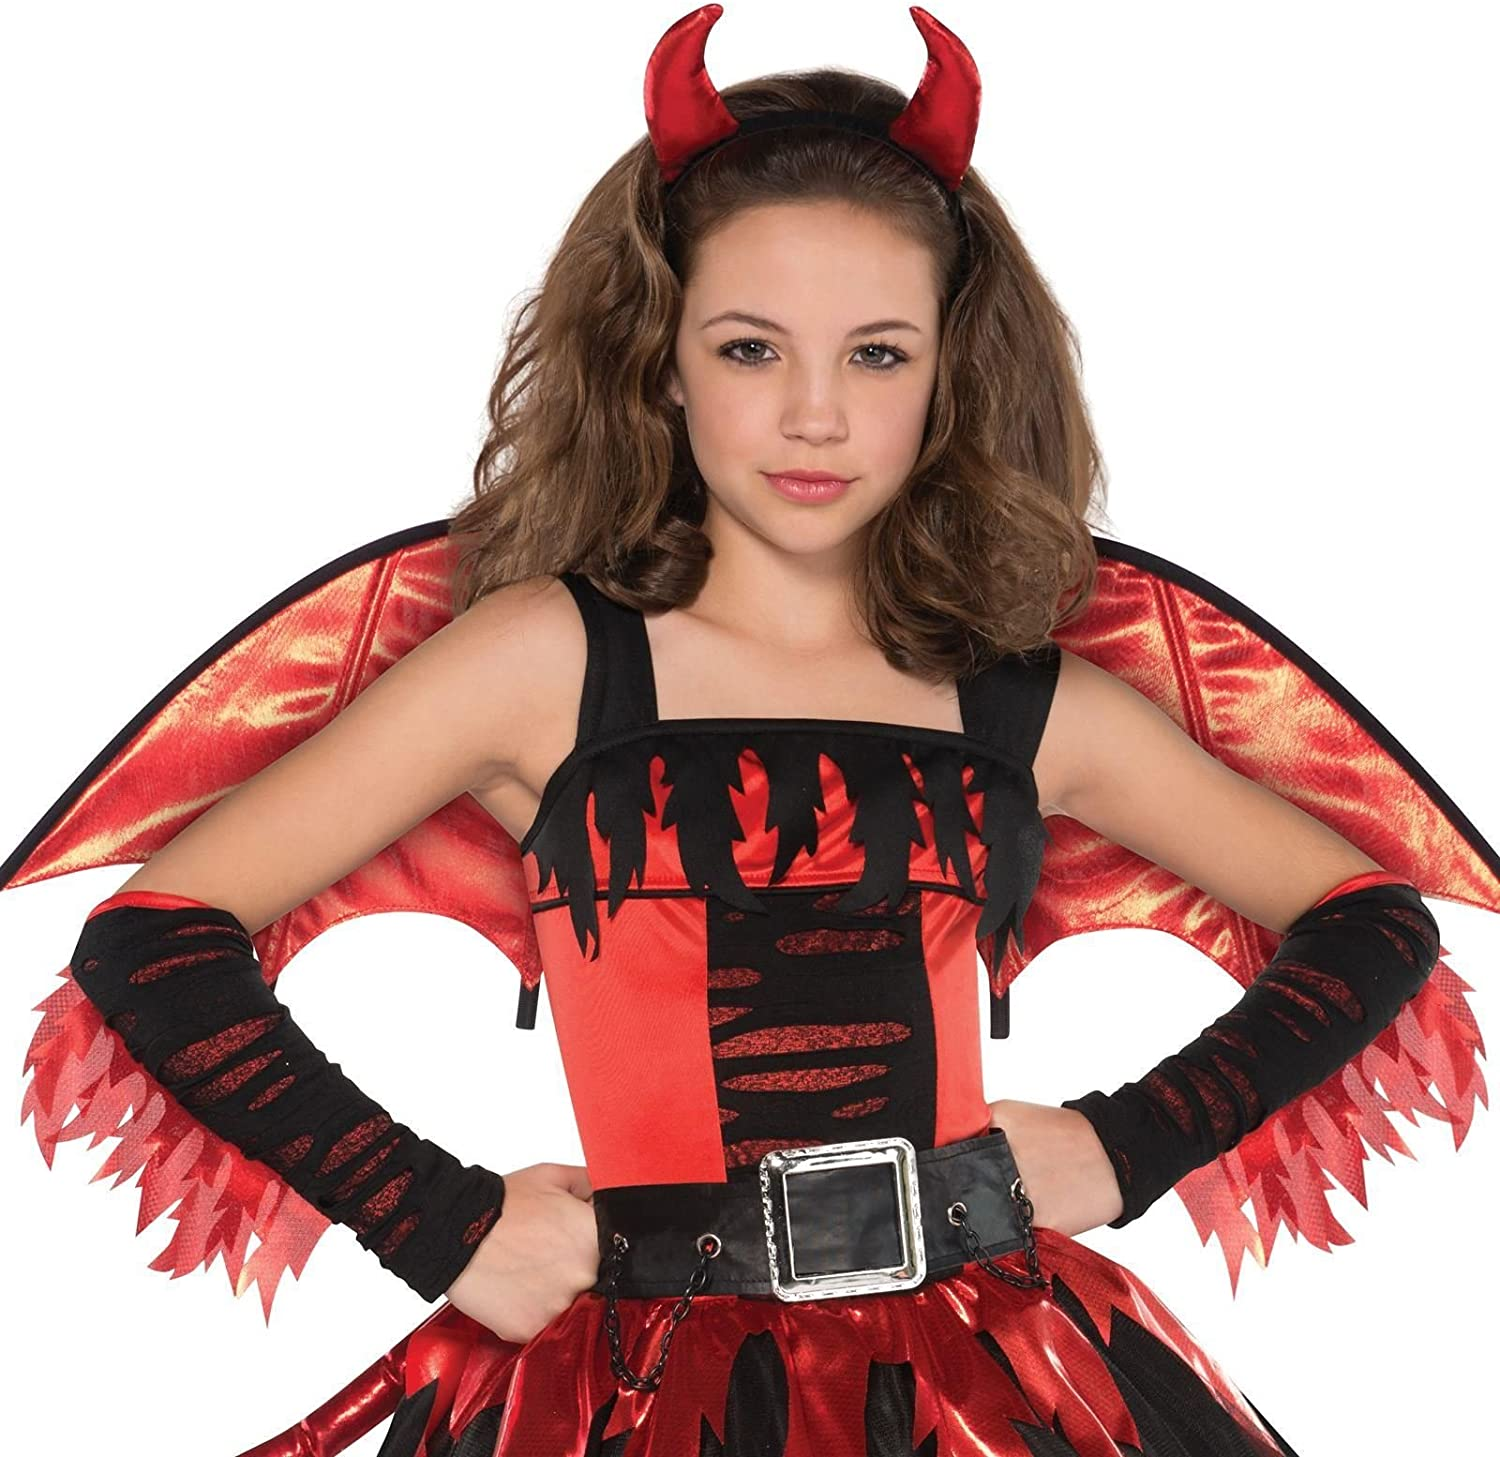 Girls Daredevil Costume Halloween Child Teen Red Devil Fancy Dress Outfit